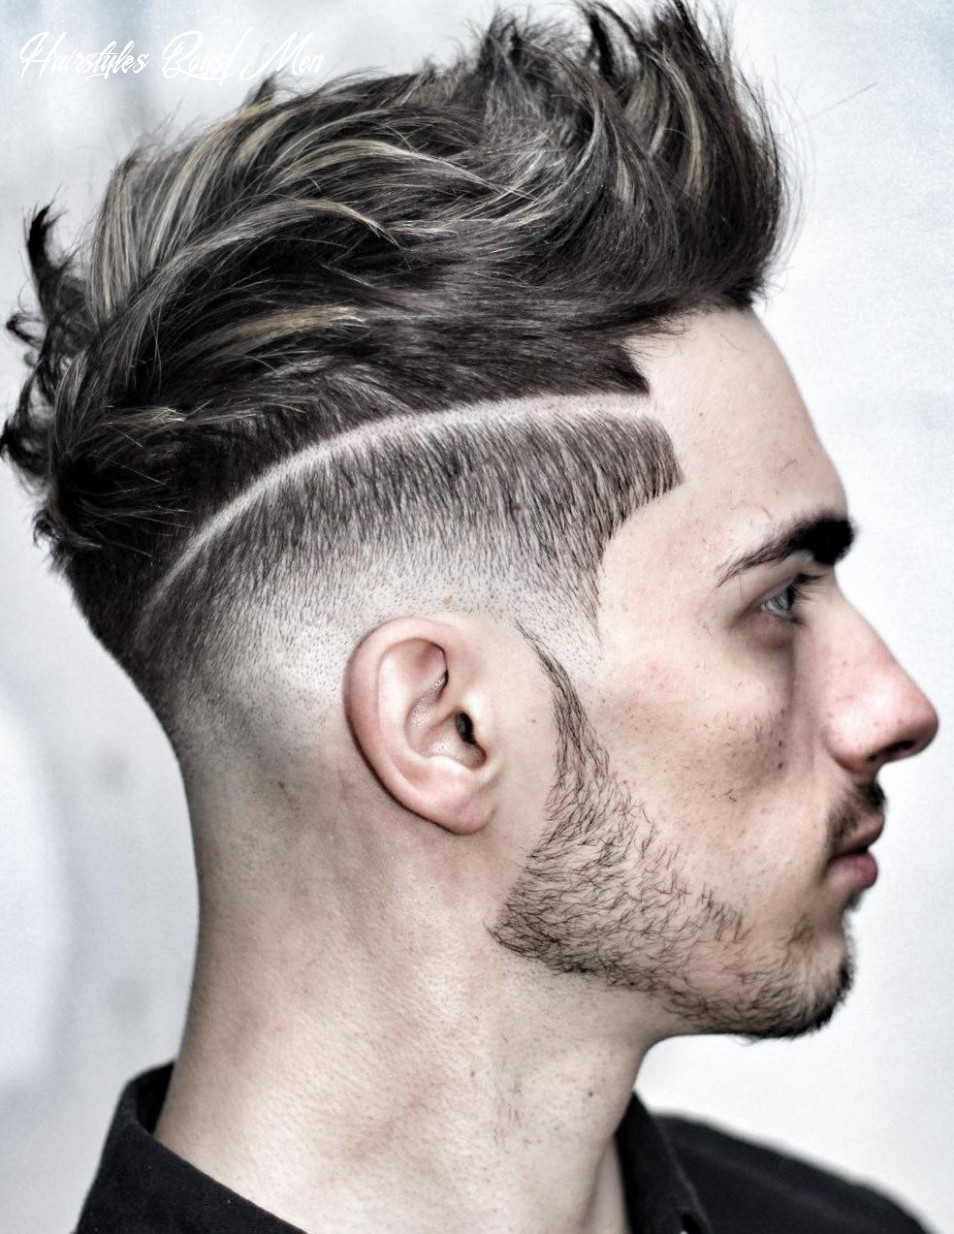 10 new hairstyles for guys hairstyles boys/men